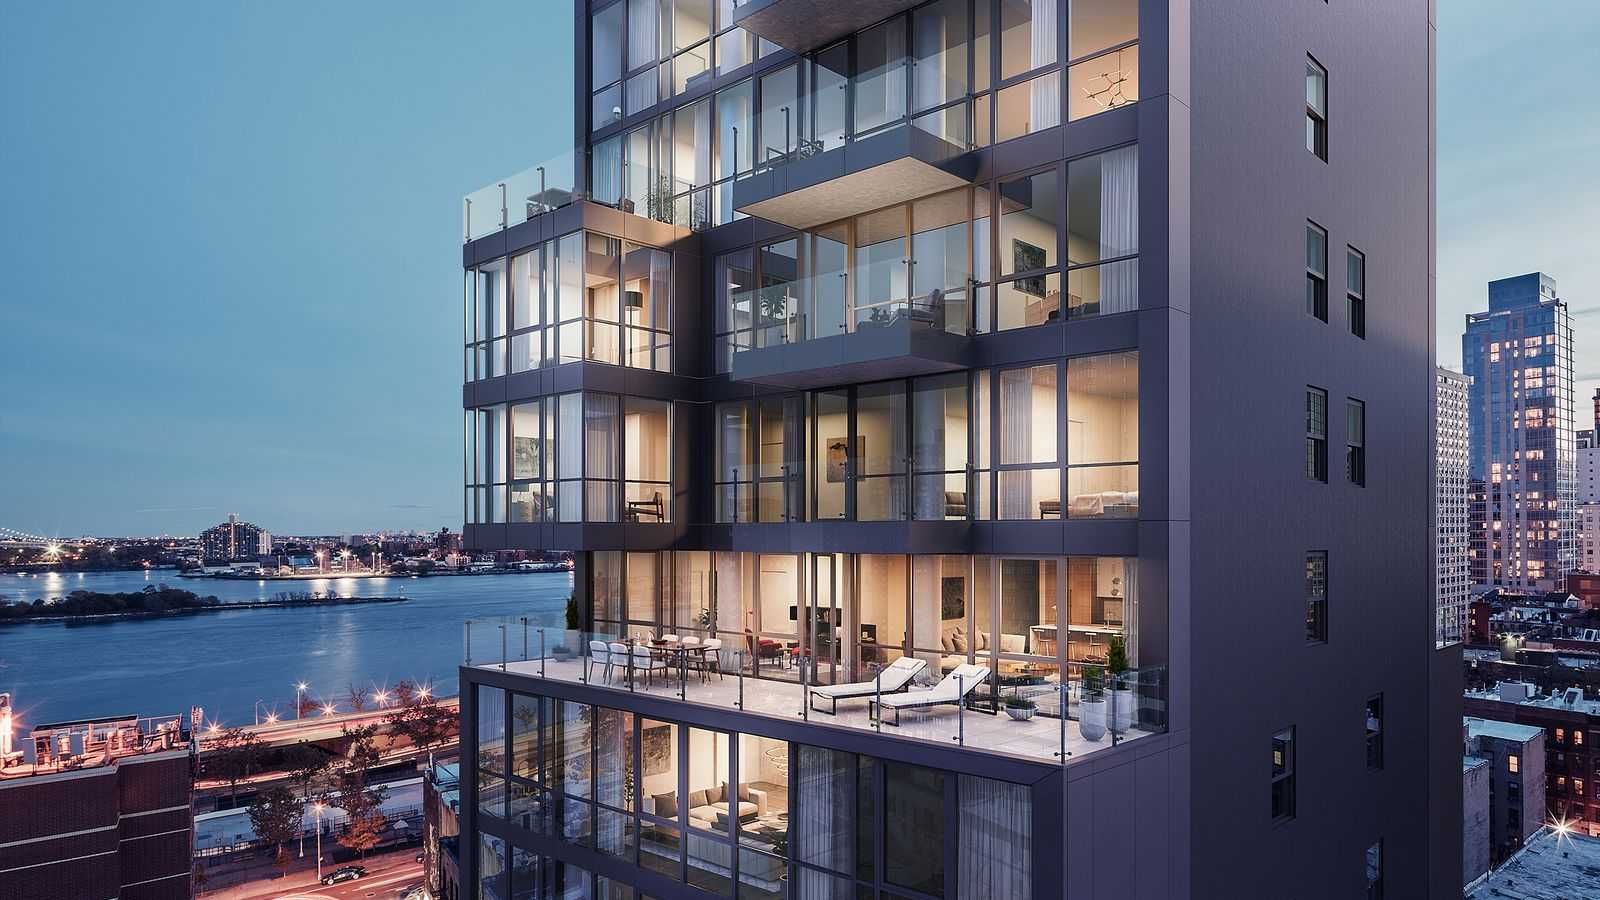 Upper east side condo vitre launches sales from 915k for Apartment new york for sale